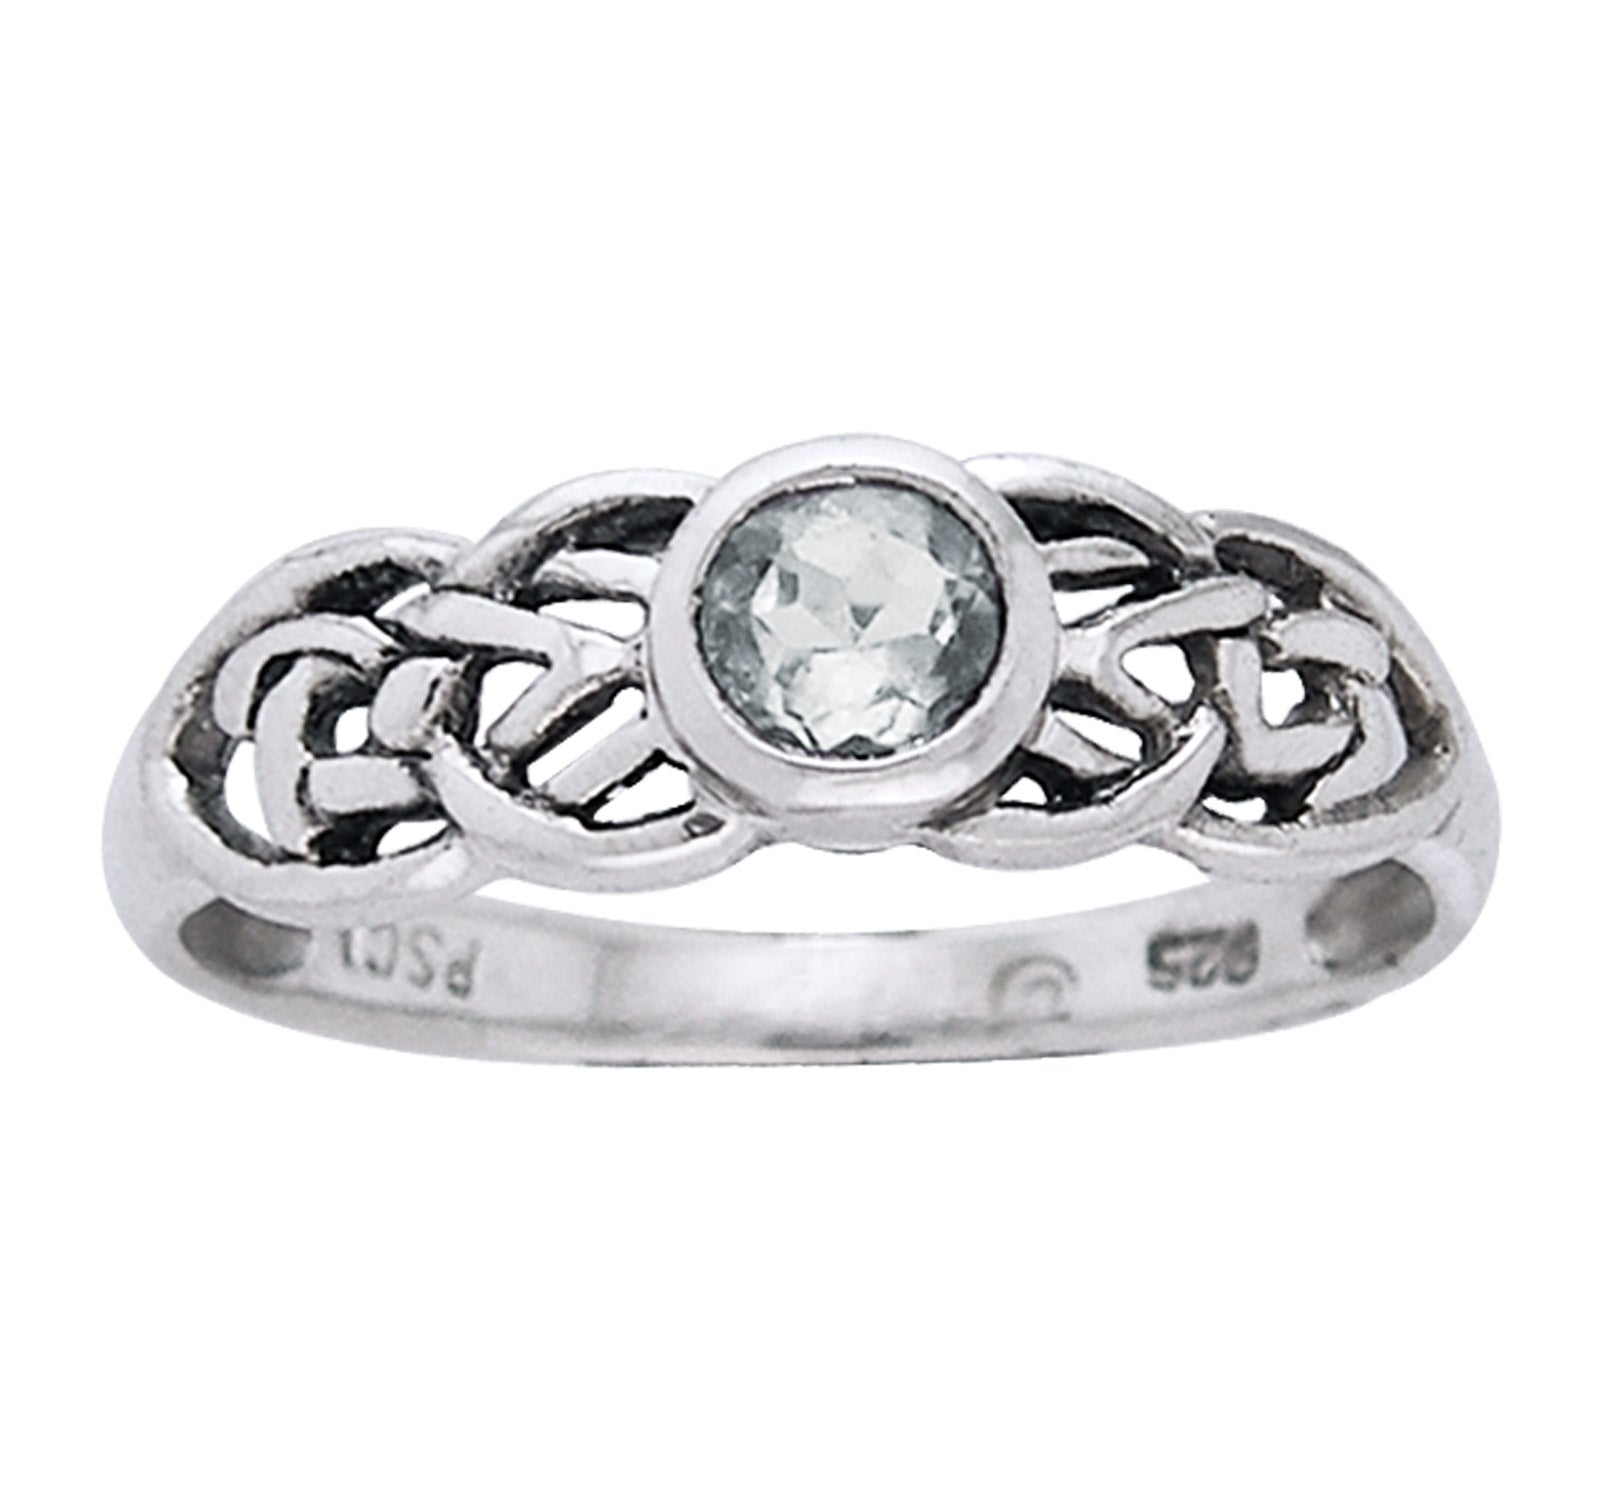 Petite Celtic Knot Birthstone Ring Sterling Silver Genuine White Topaz For April - Silver Insanity